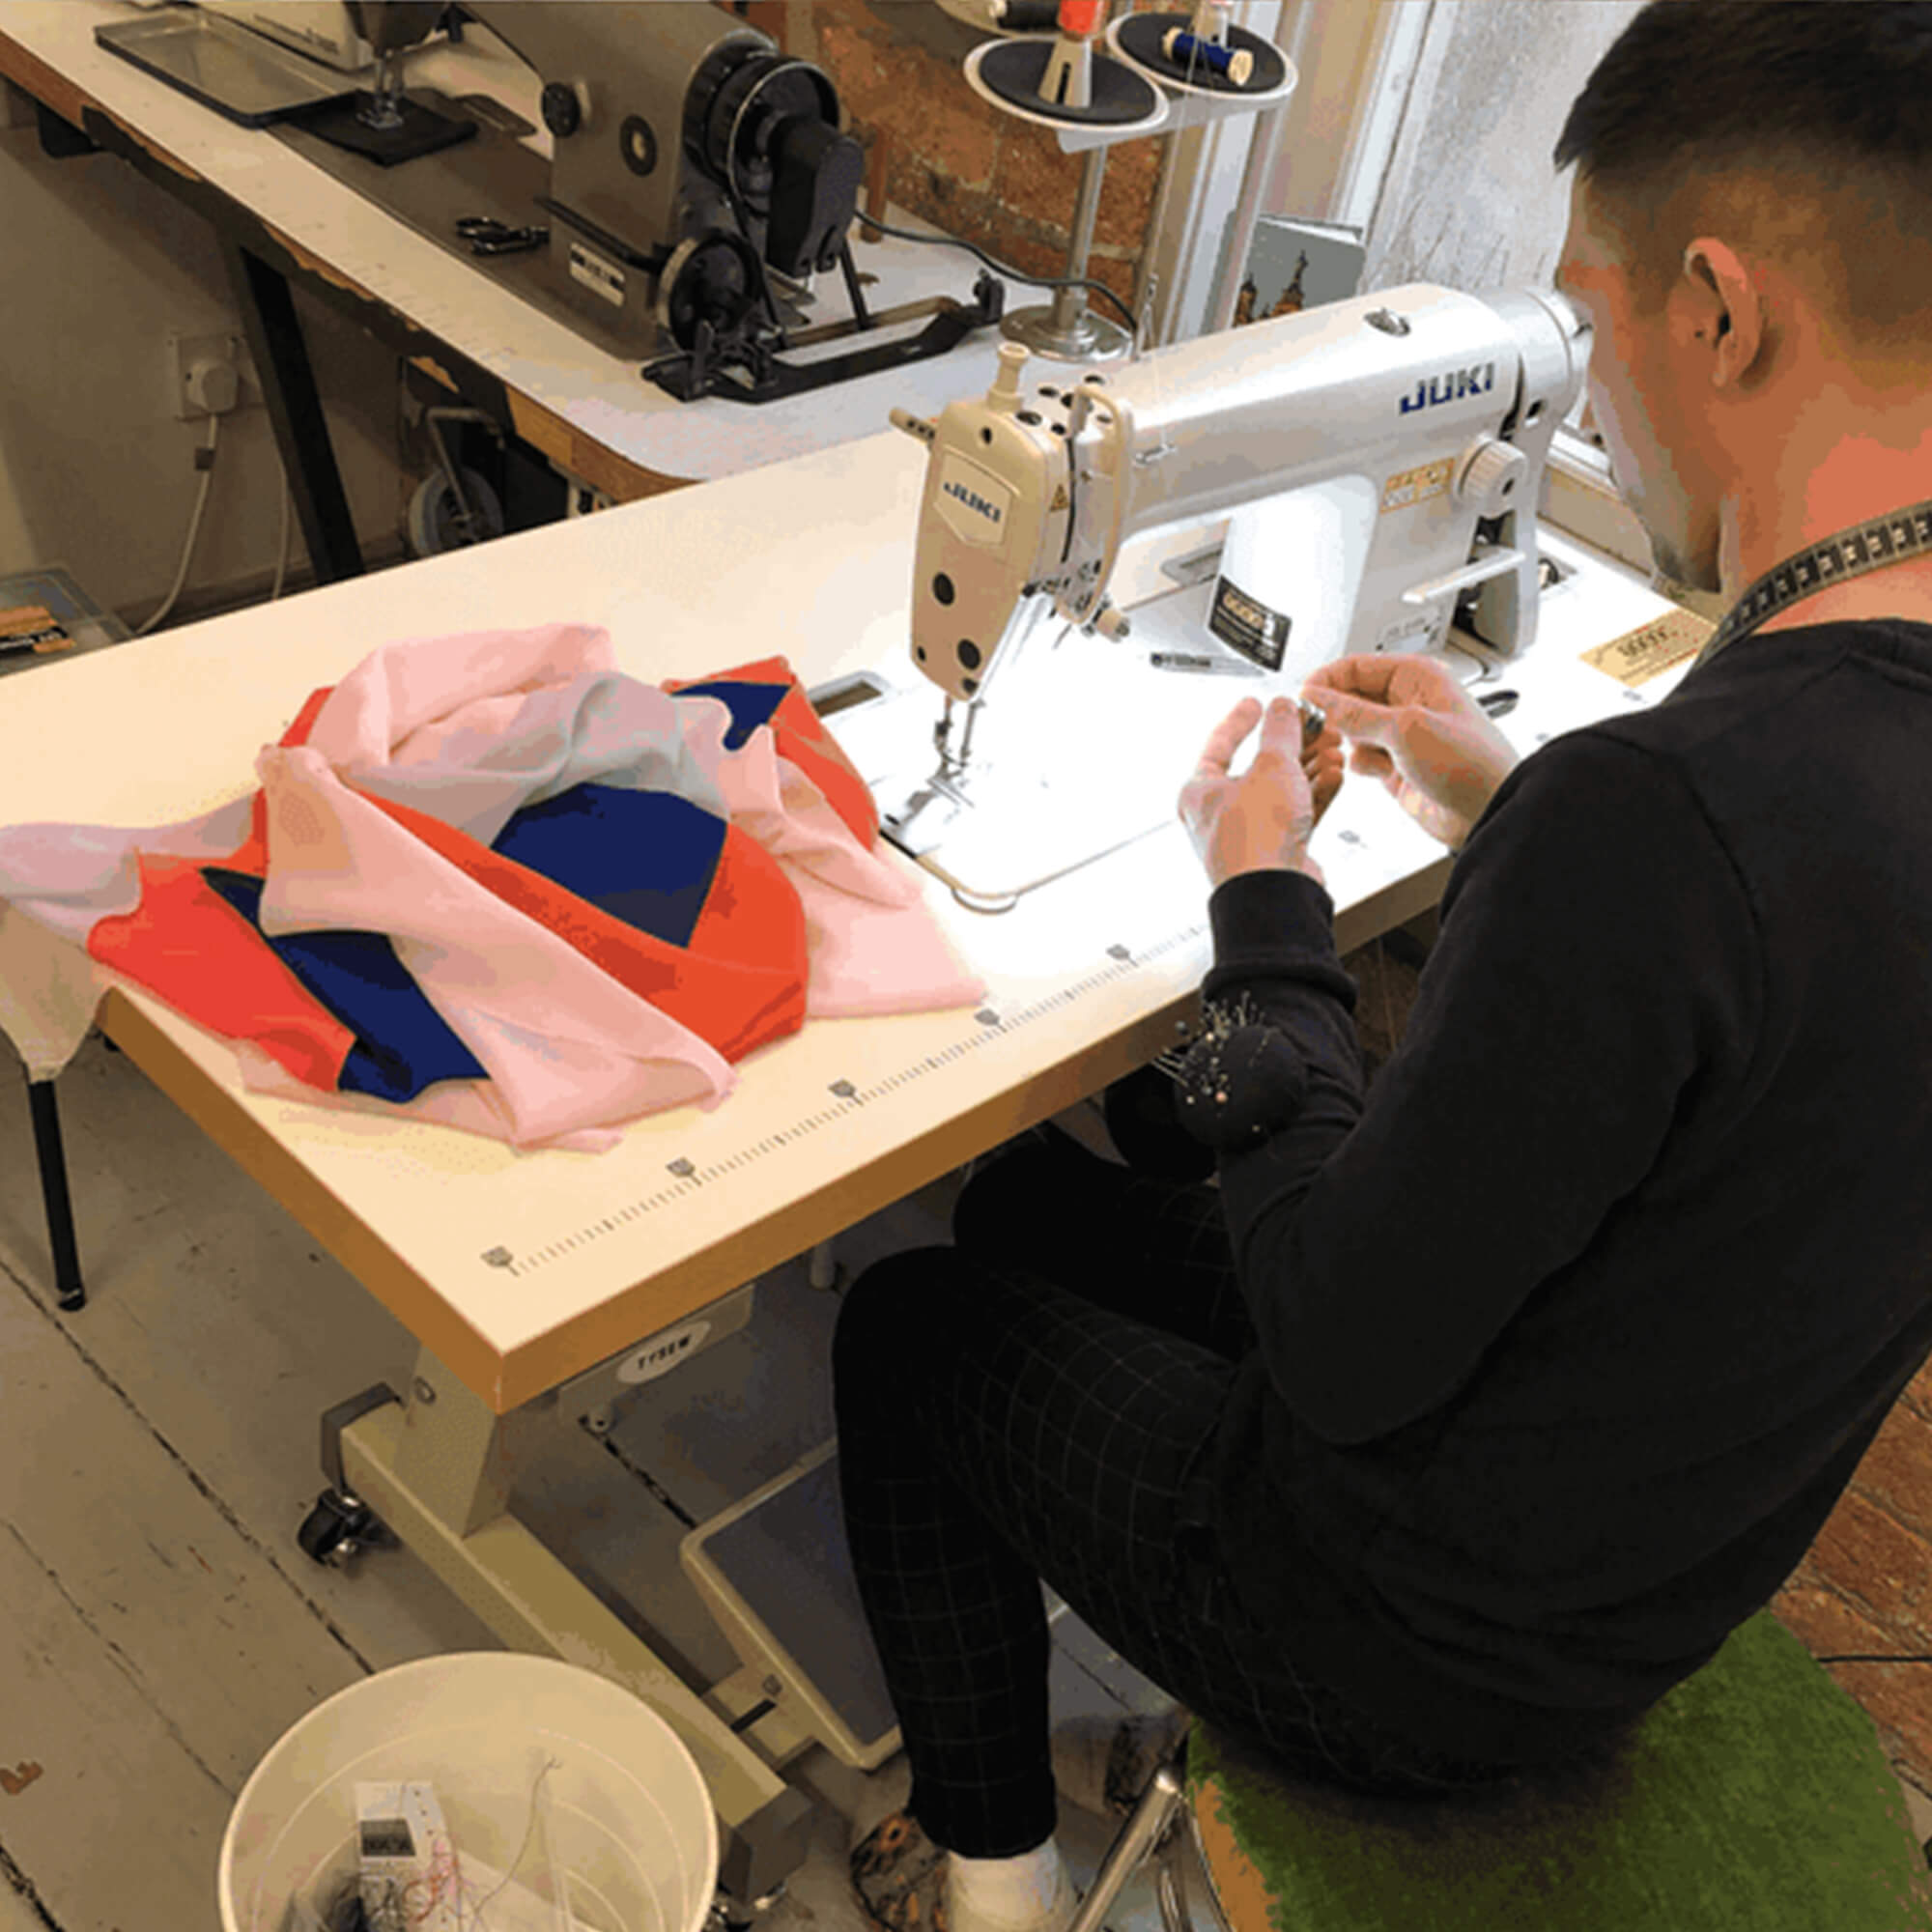 Alexey working on a sewing machine.